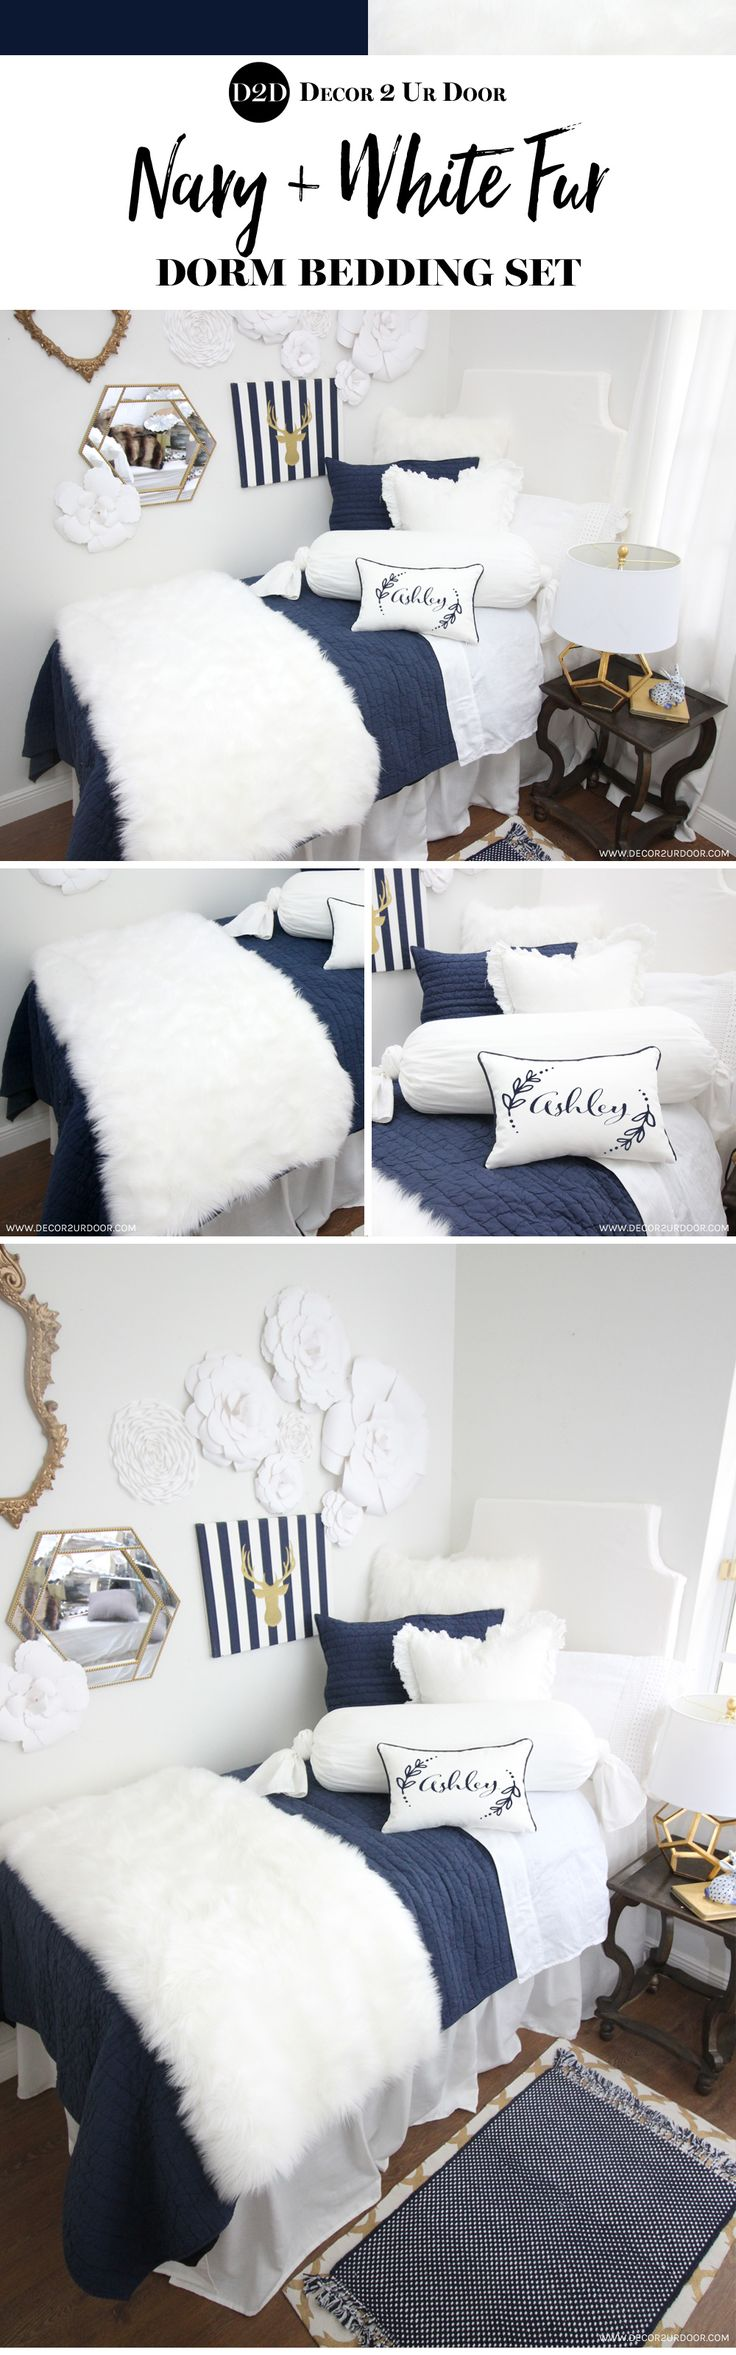 Best 17 Best Ideas About Navy Bedroom Decor On Pinterest Navy This Month